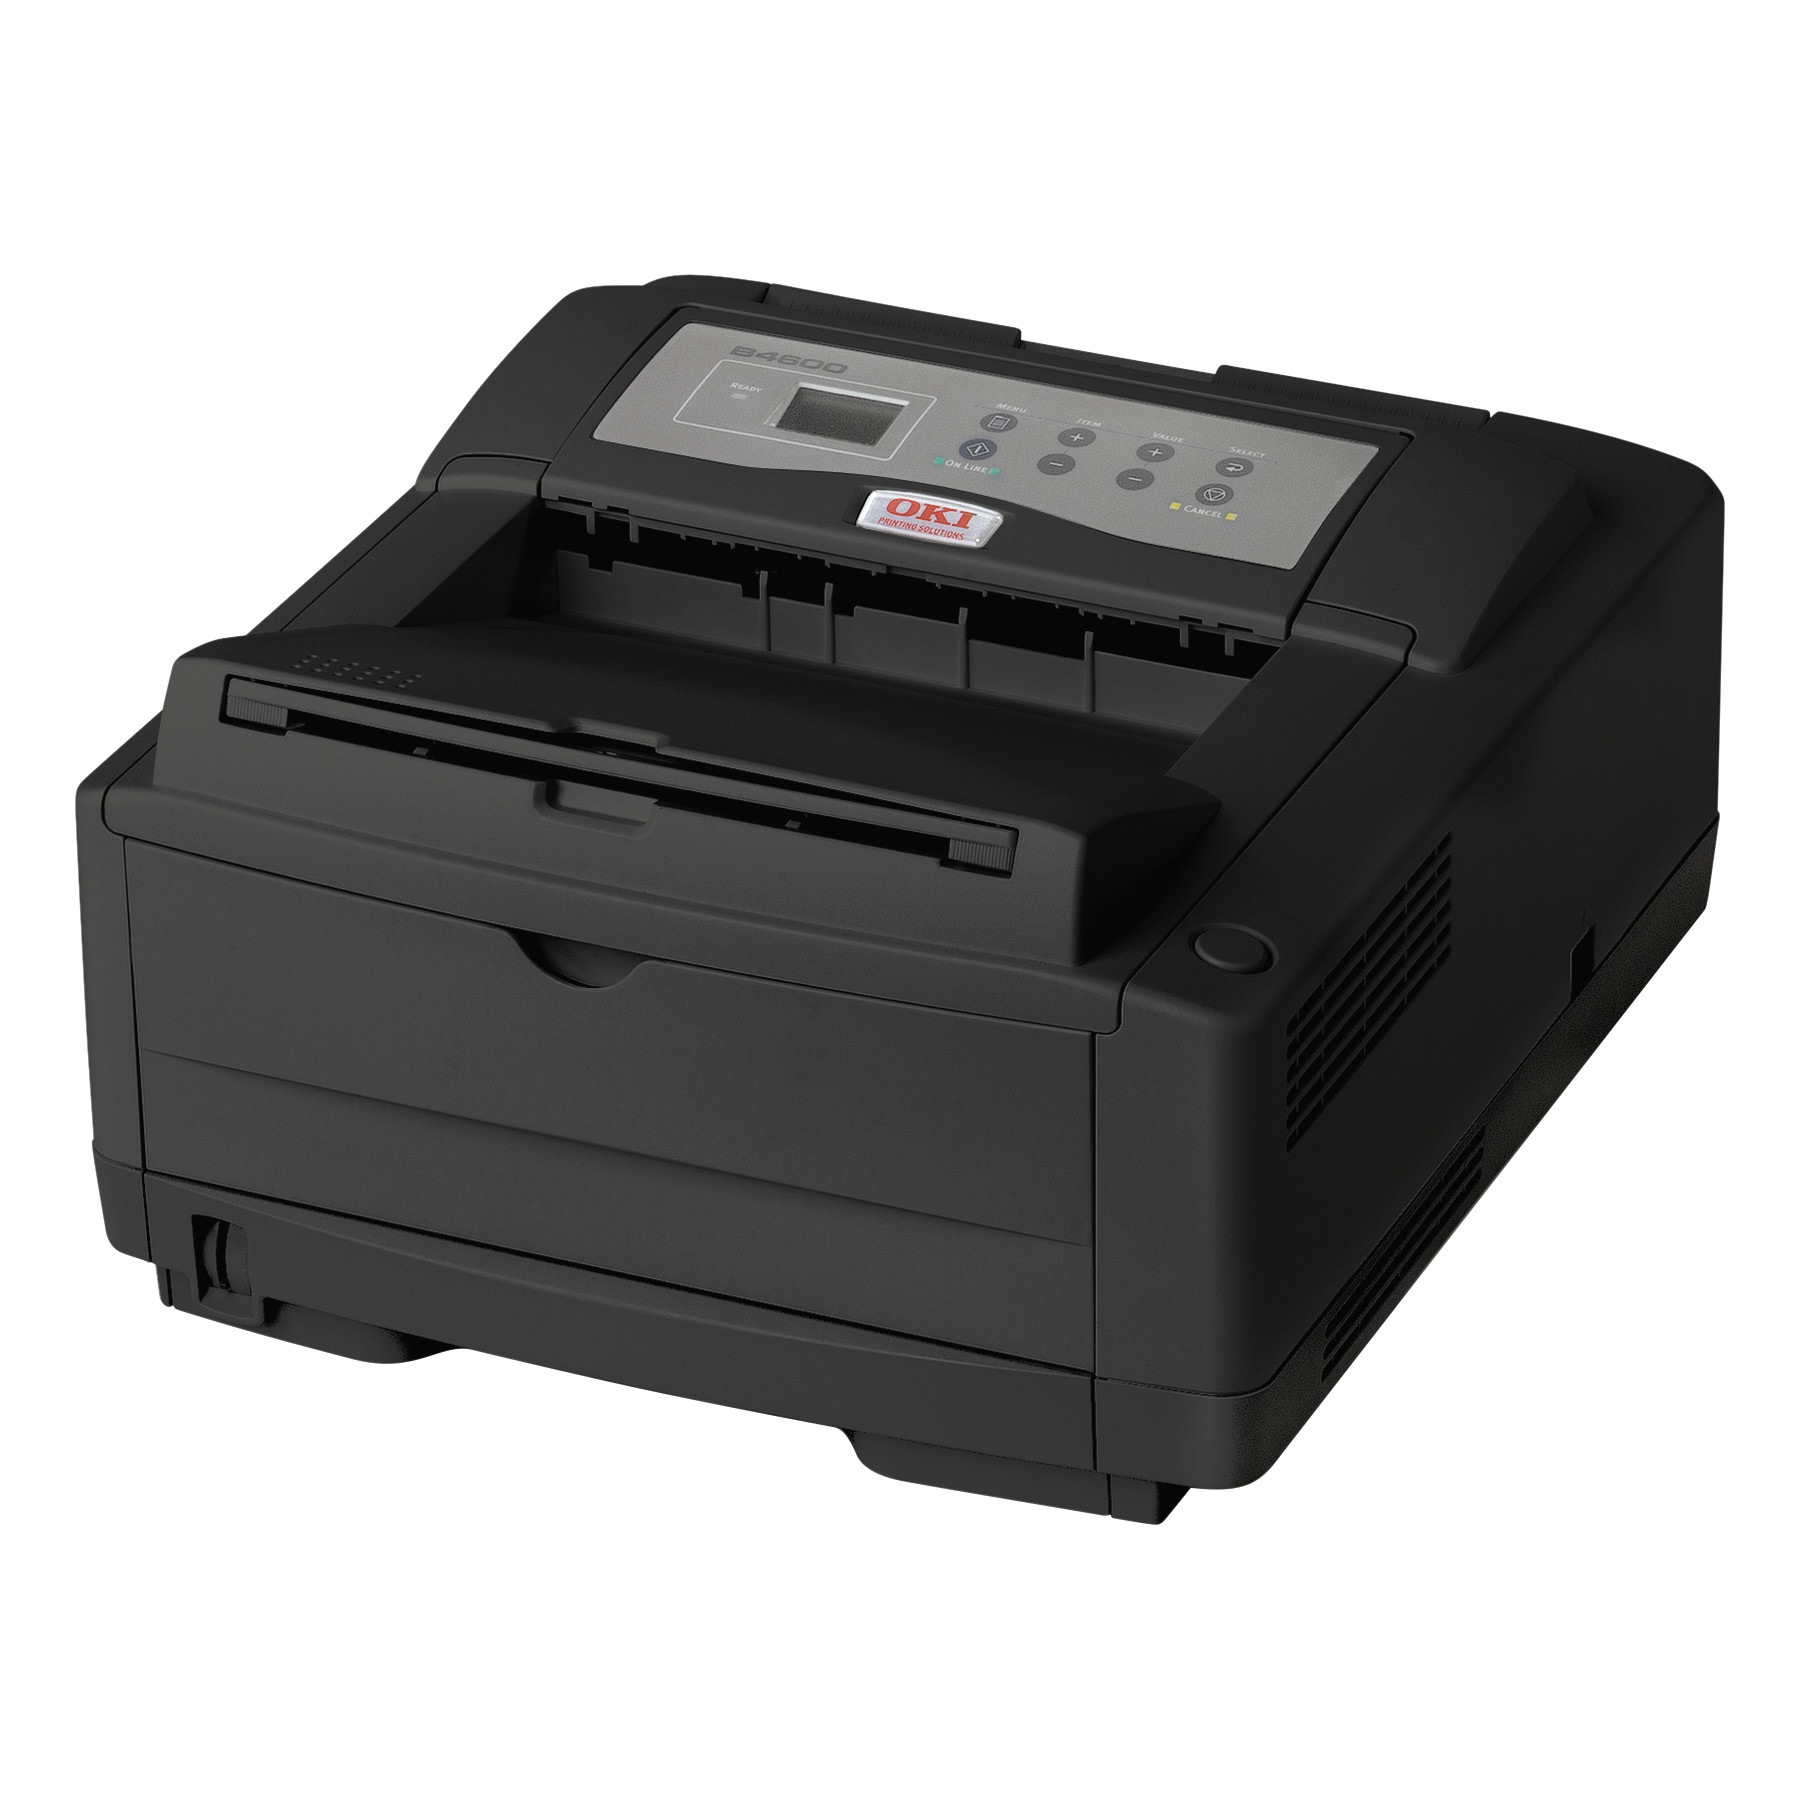 Oki B4600 Series Digital Monochrome Printer, 120V, Black